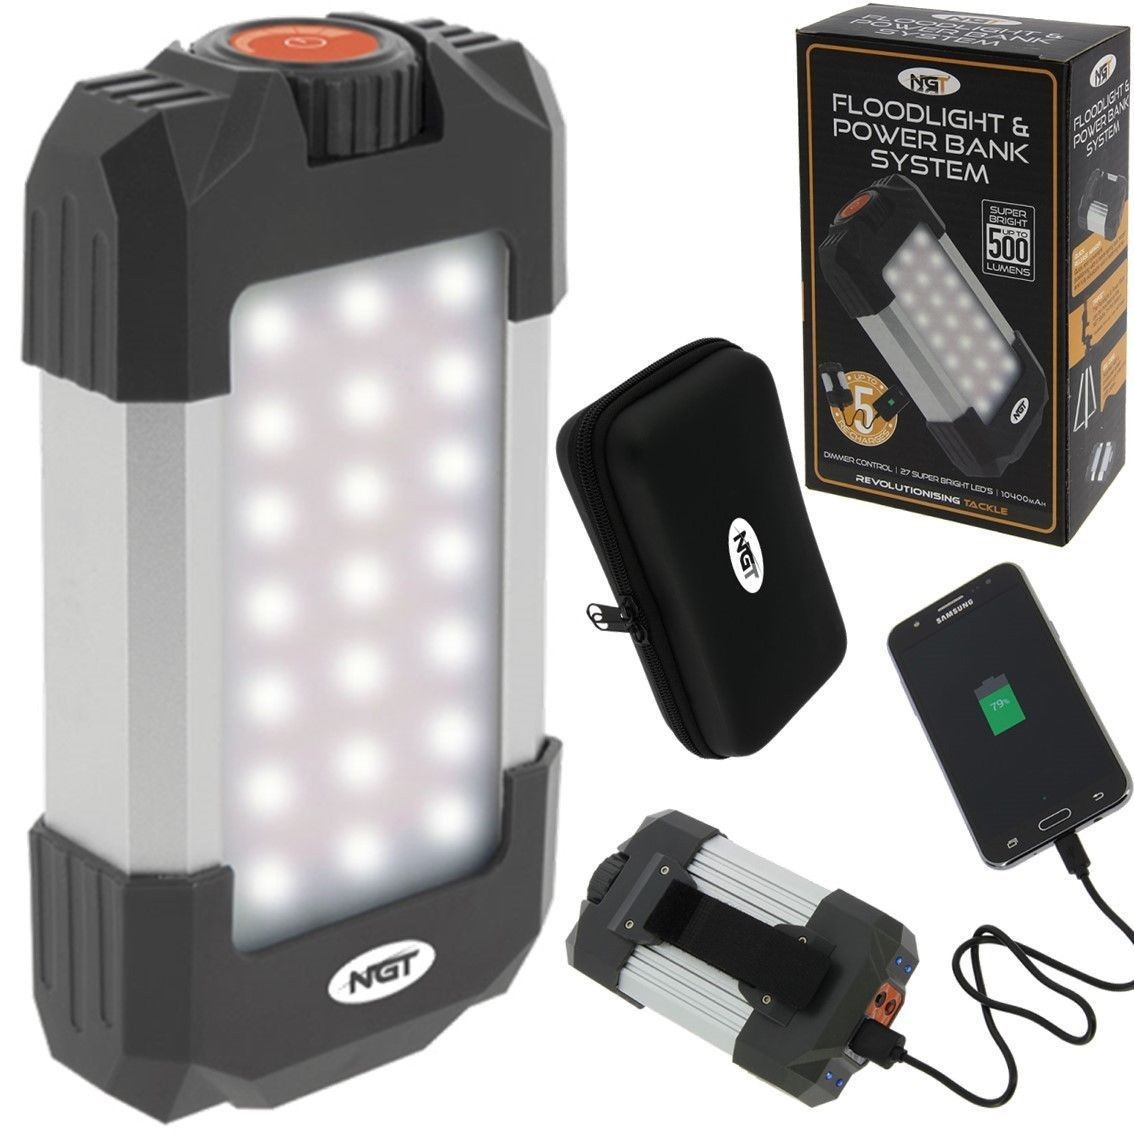 Flood Light and Power Bank System